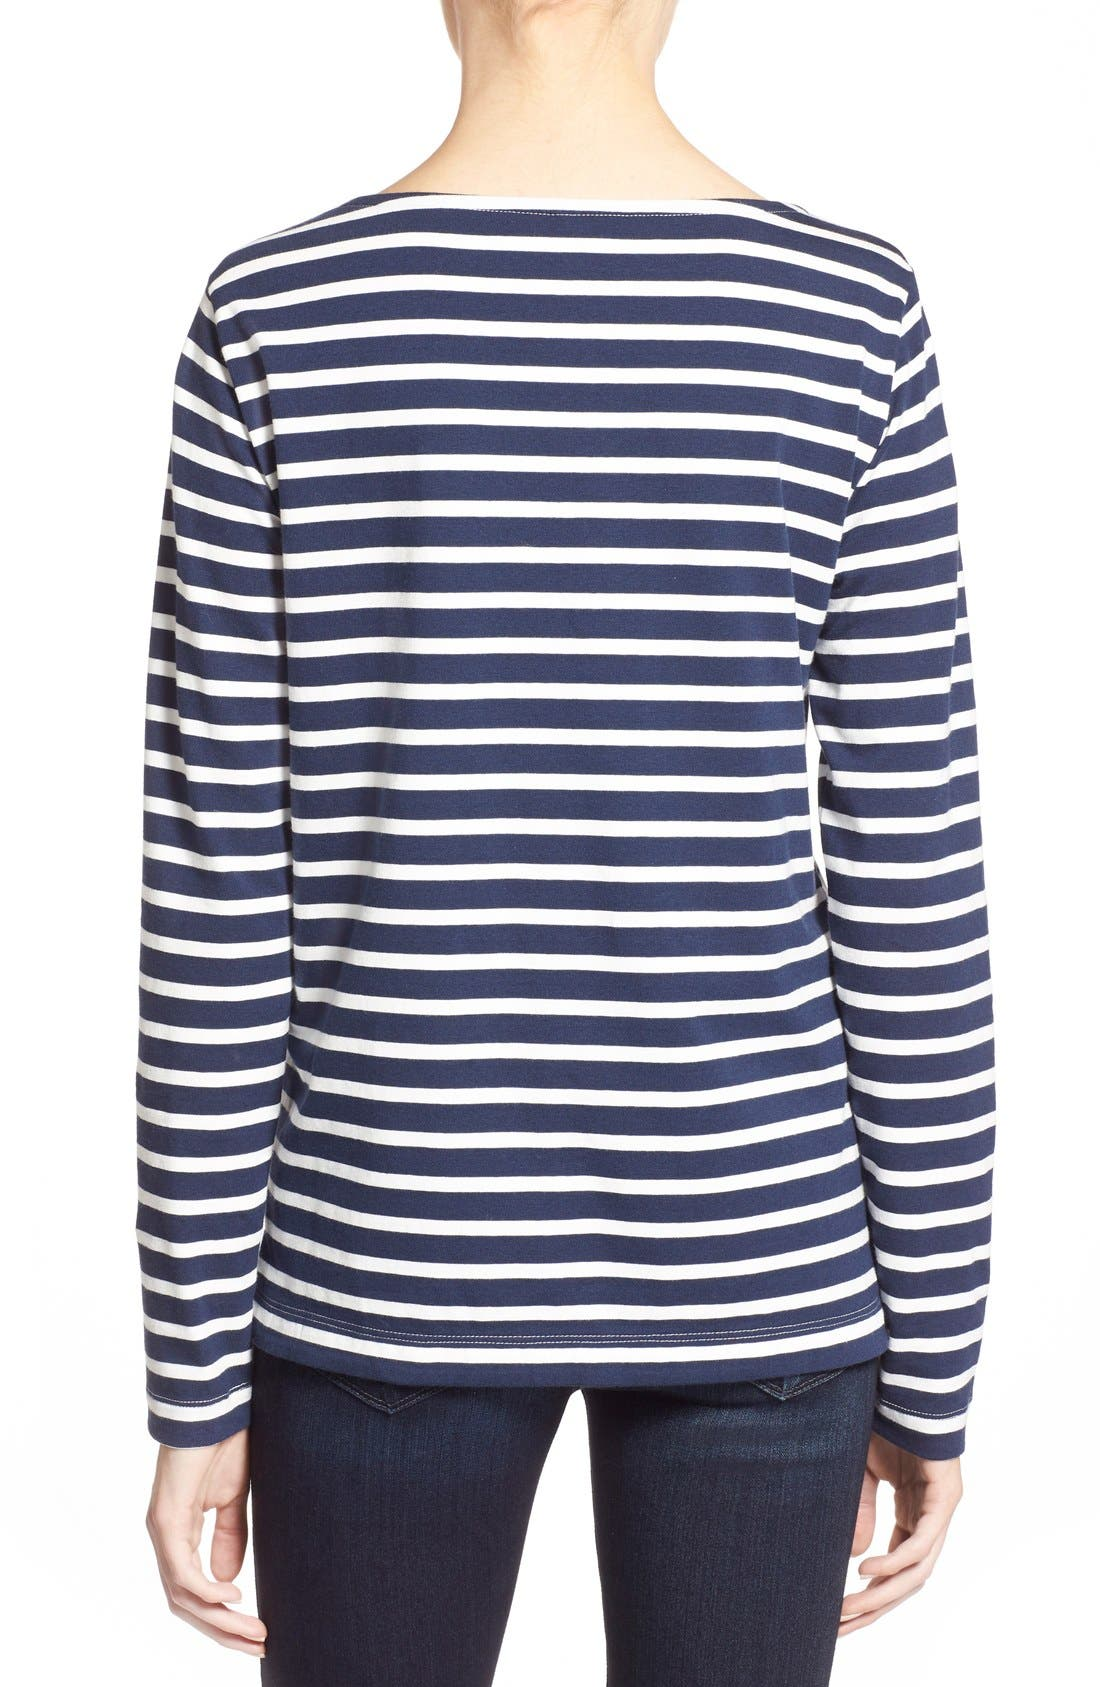 Alternate Image 2  - Vineyard Vines Stripe Long Sleeve Knit Tee